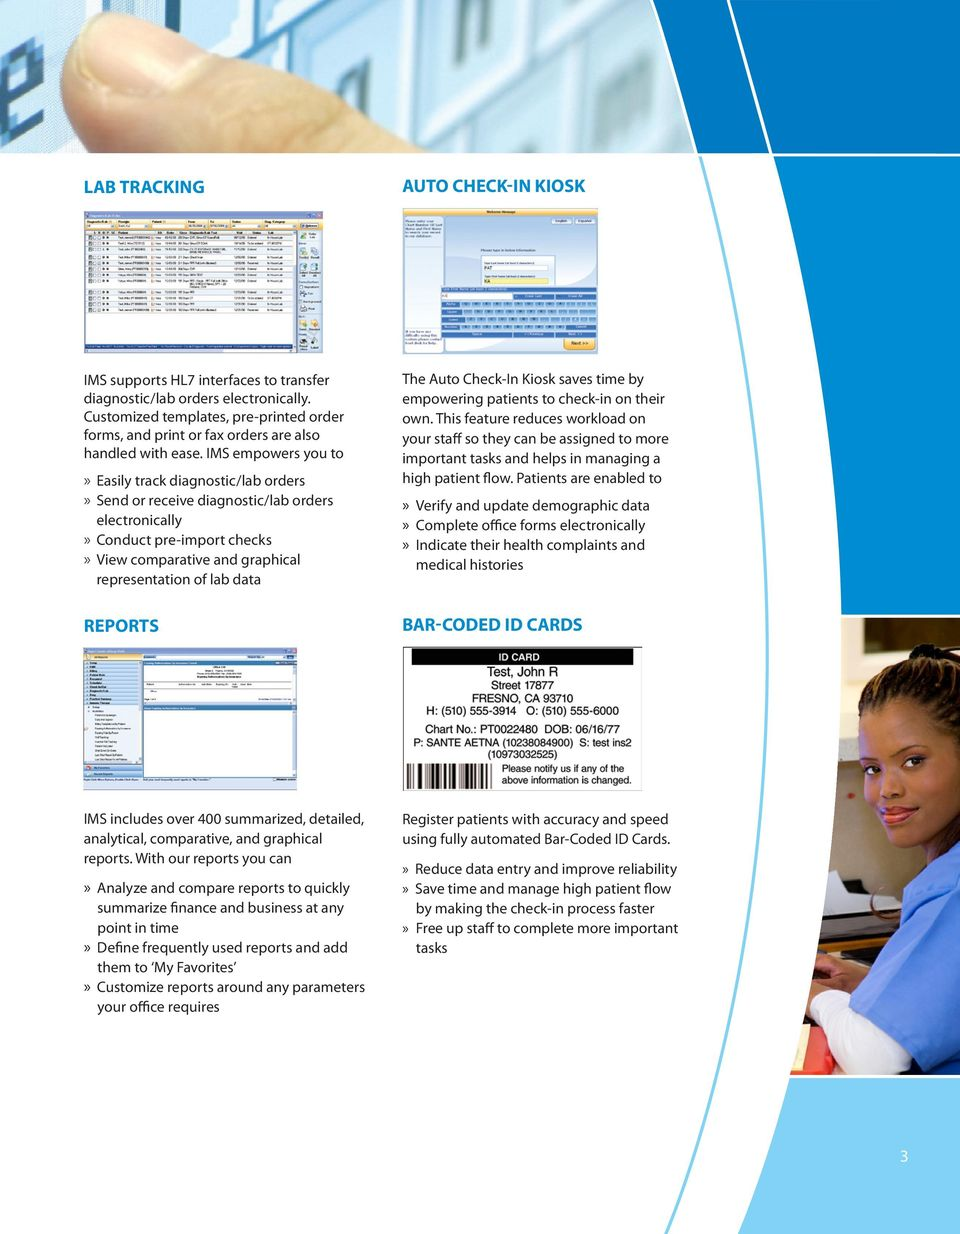 IMS empowers you to» Easily track diagnostic/lab orders» Send or receive diagnostic/lab orders electronically» Conduct pre-import checks» View comparative and graphical representation of lab data